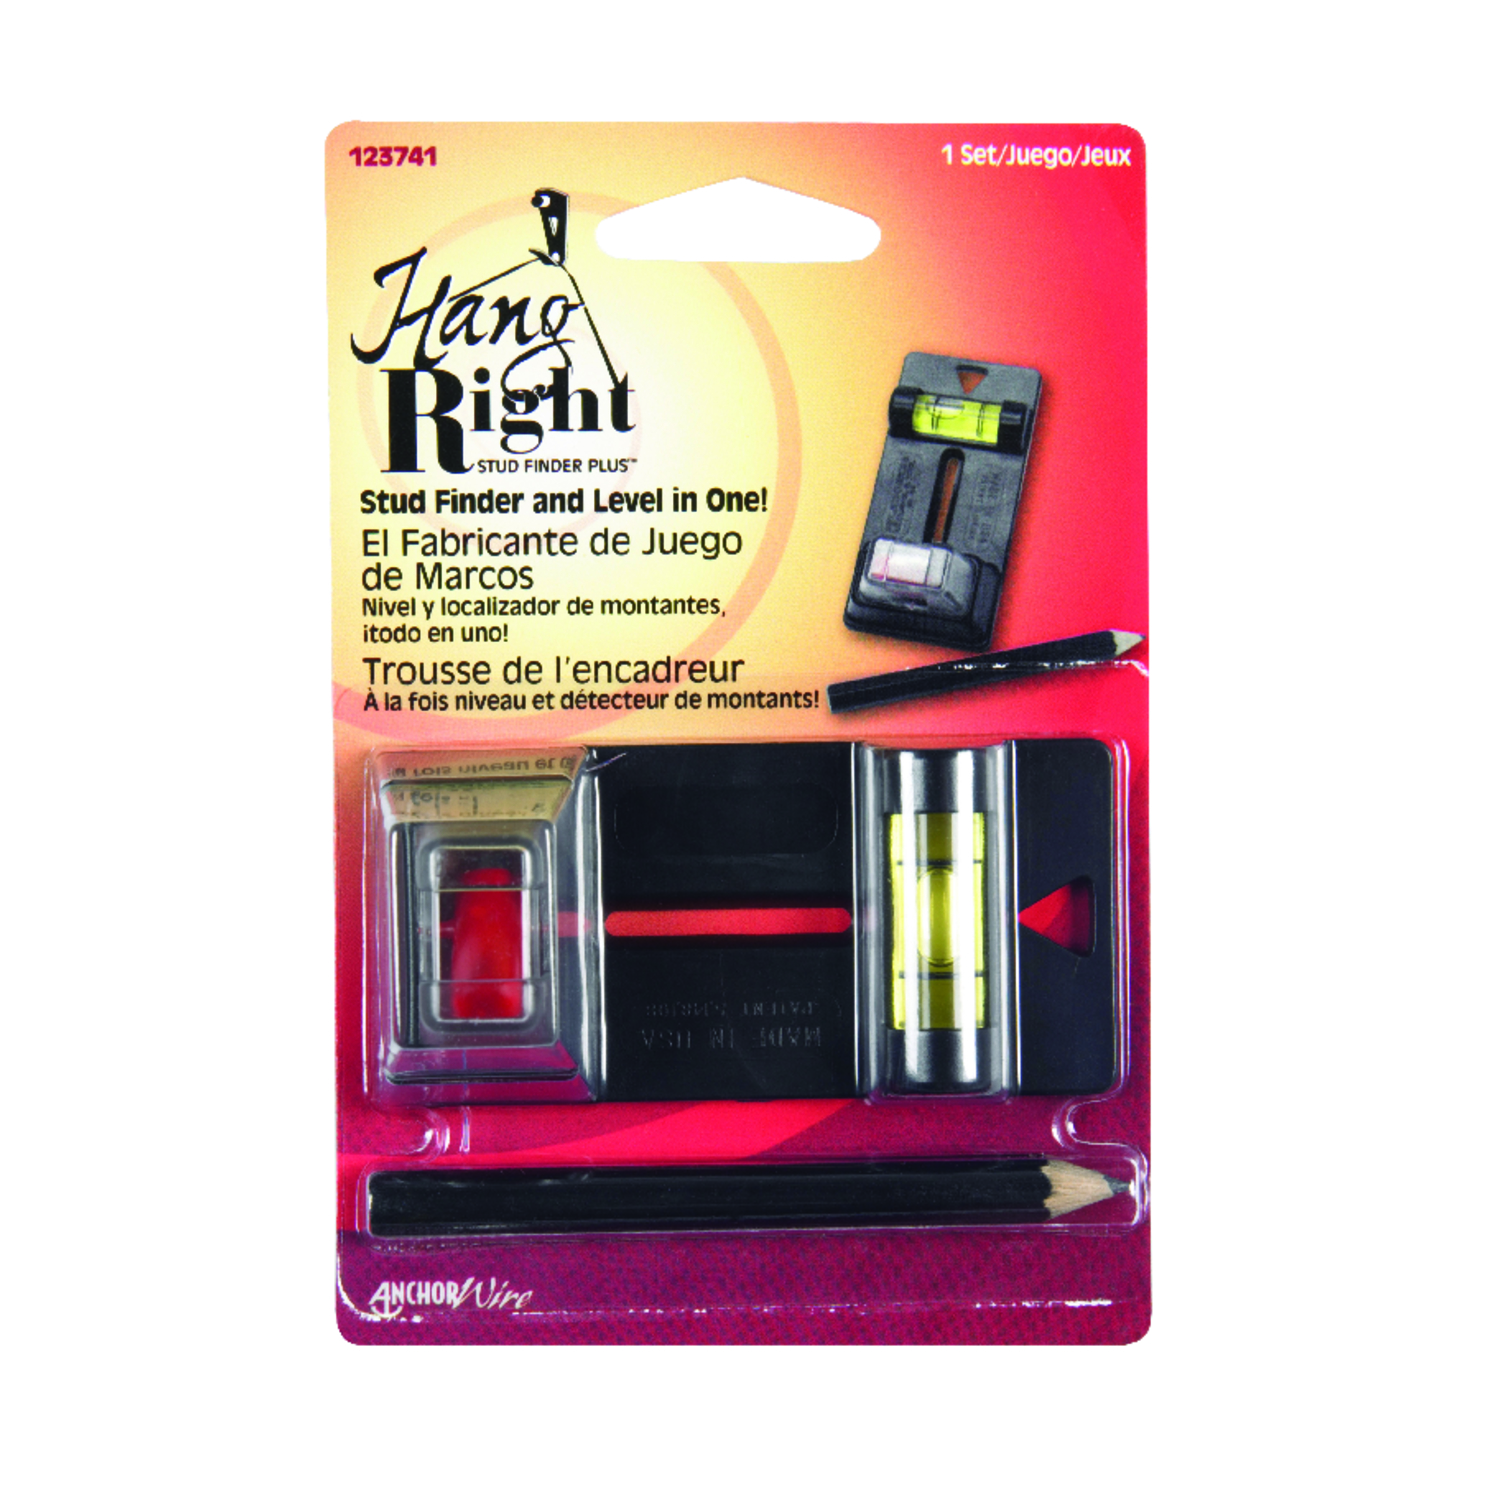 HILLMAN  Hang Right  Plastic Coated  Plastic  Stud Finder and Level Vial  1 pk 1 lb.